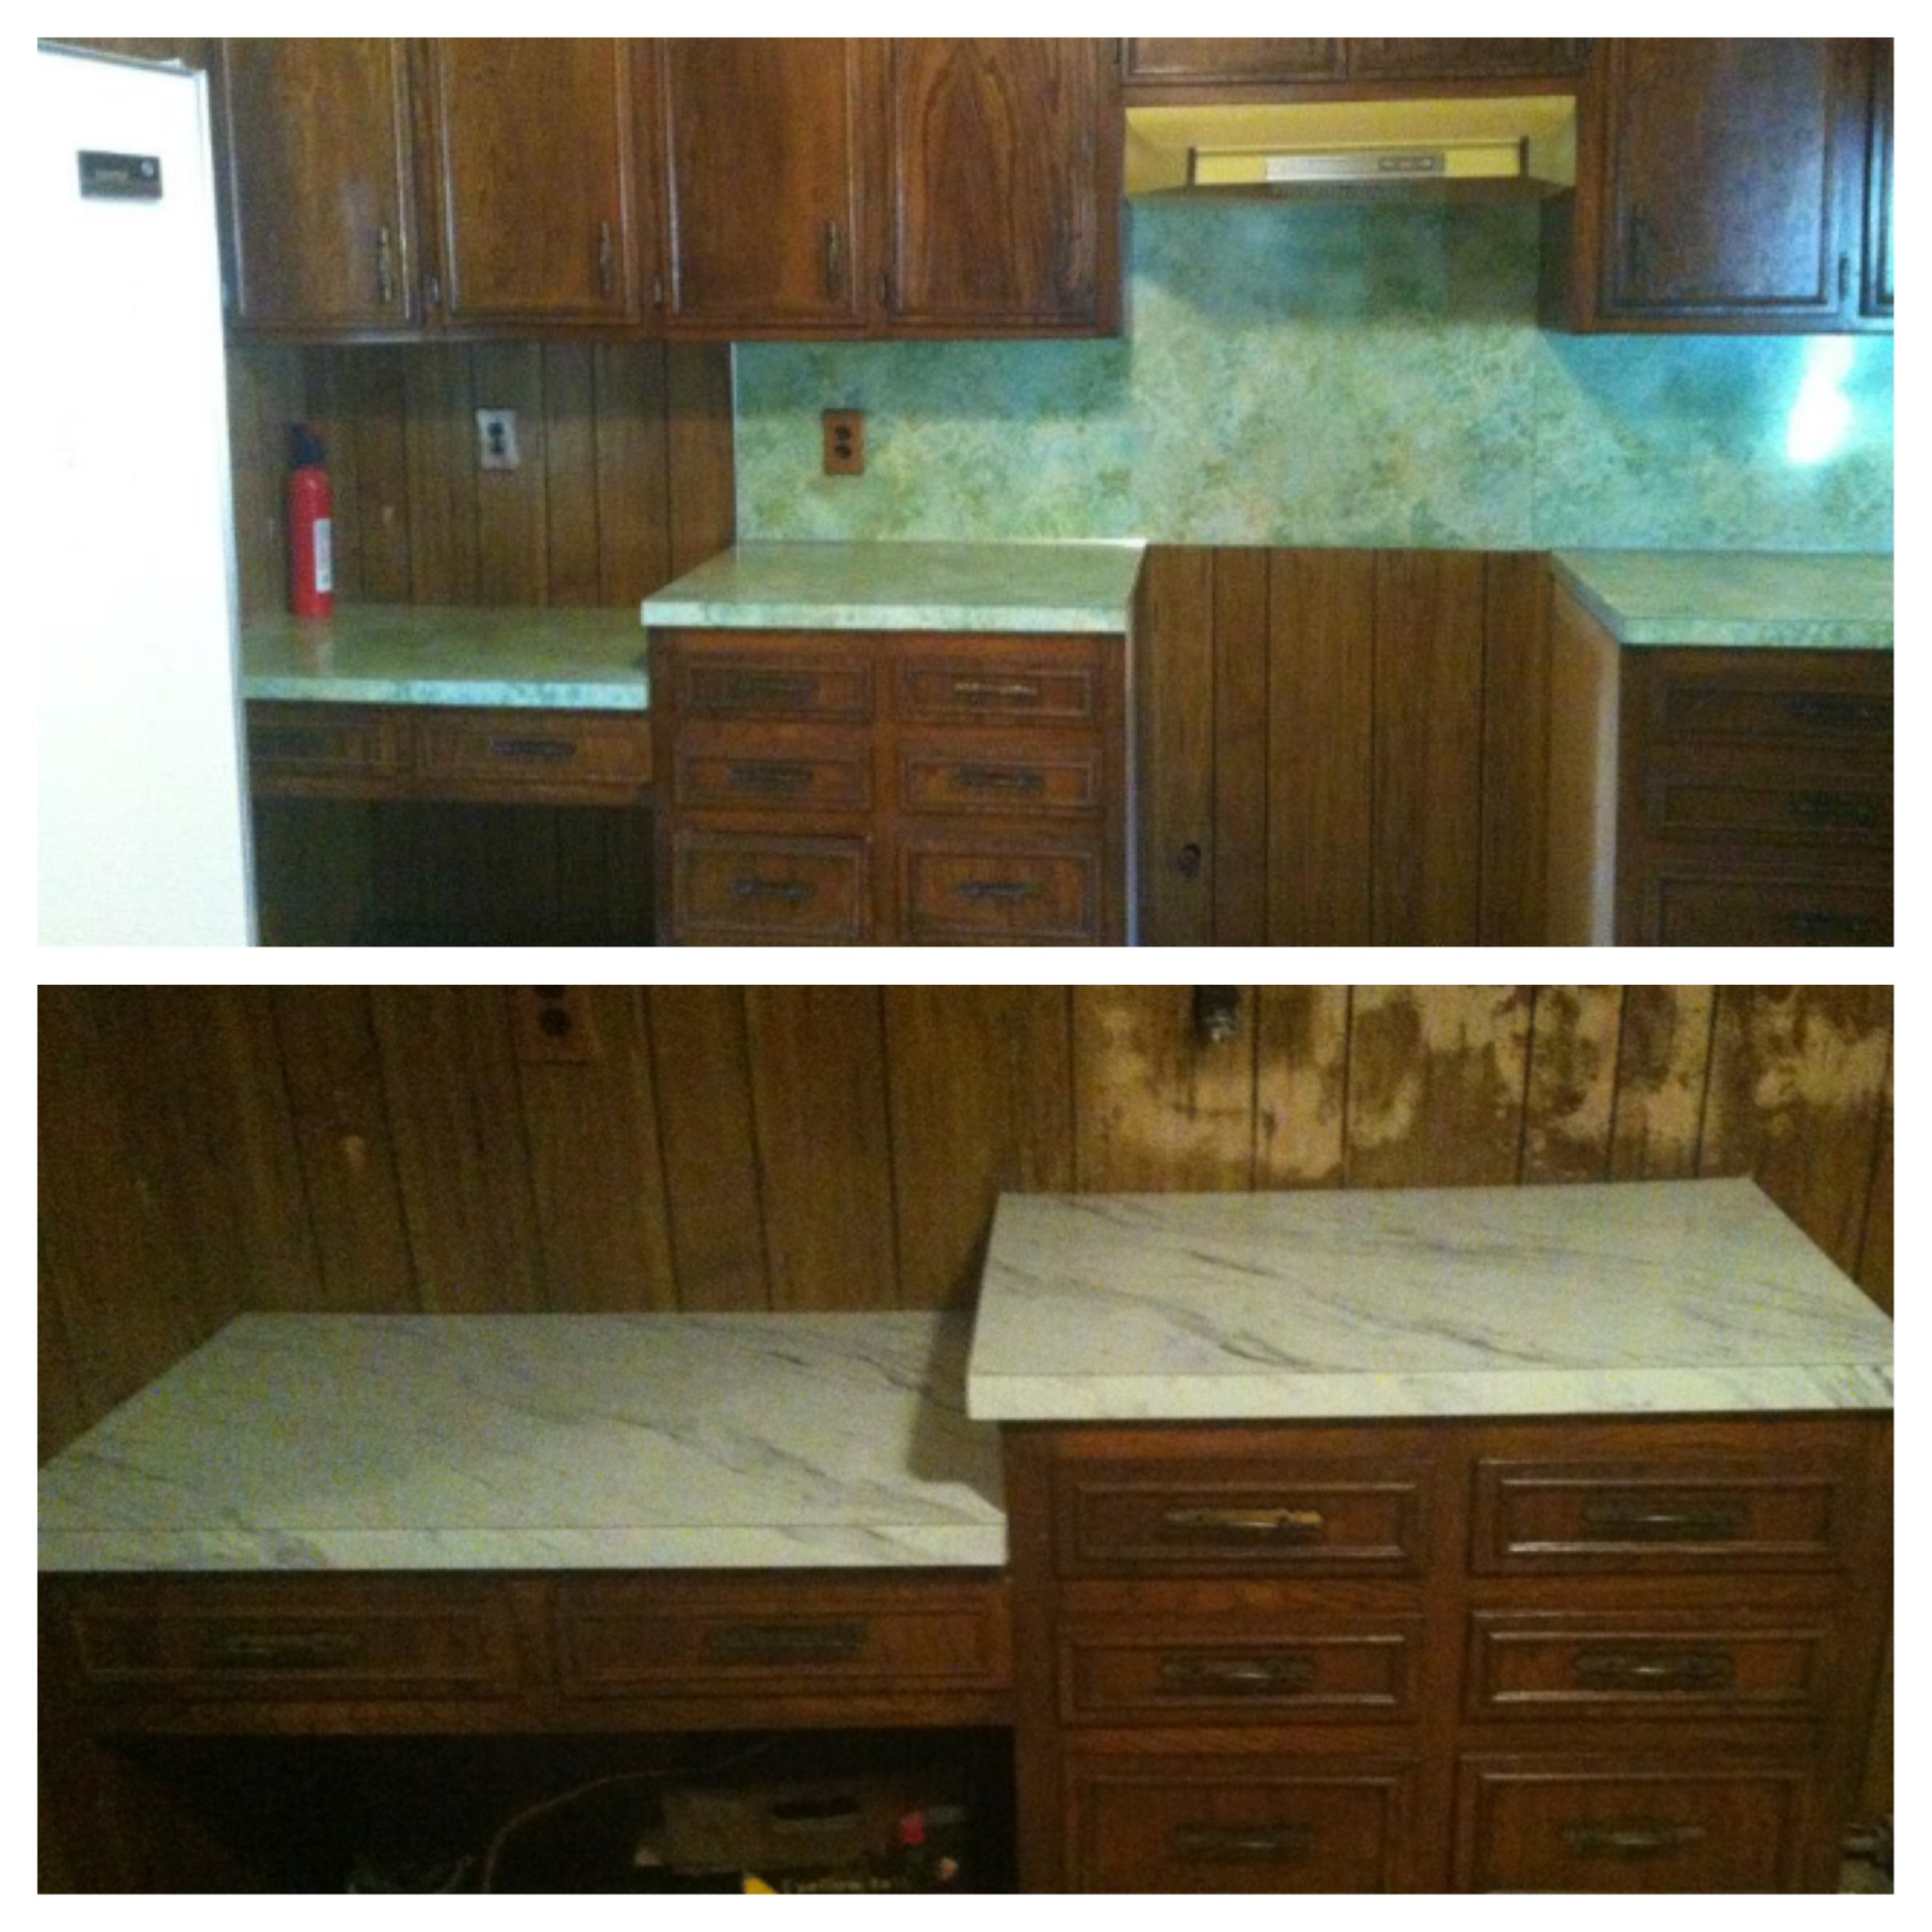 The New Countertops